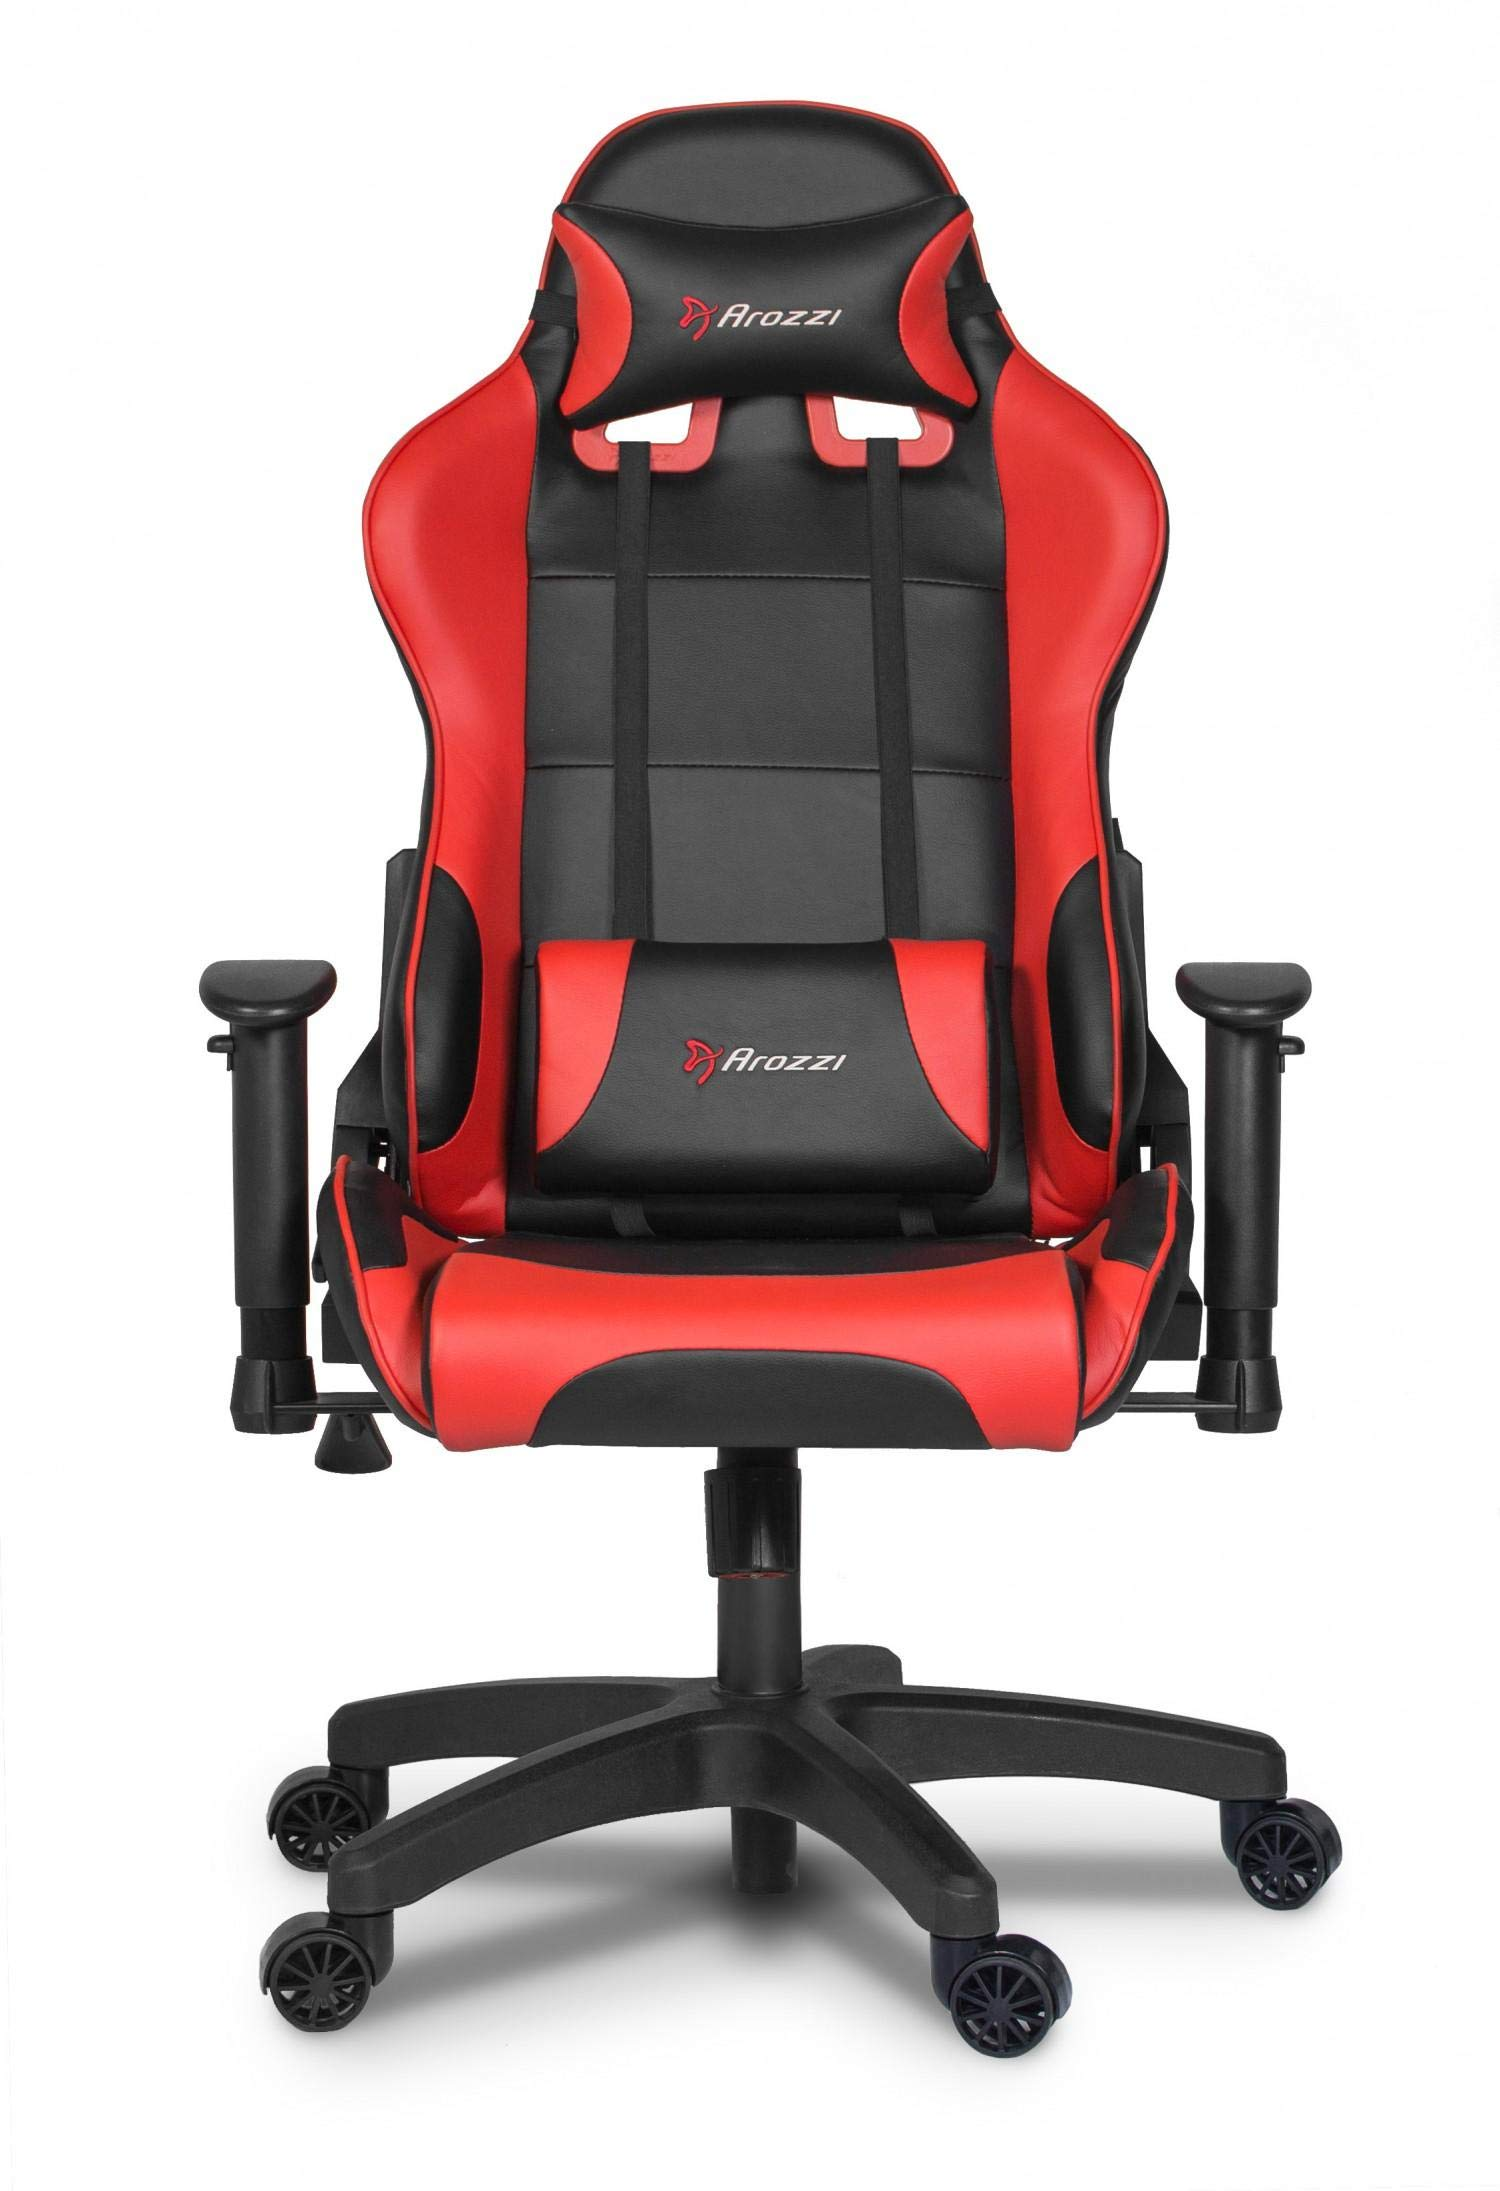 Astonishing Arozzi Verona Junior Gaming Chair For Kids Red Price In Uae Alphanode Cool Chair Designs And Ideas Alphanodeonline